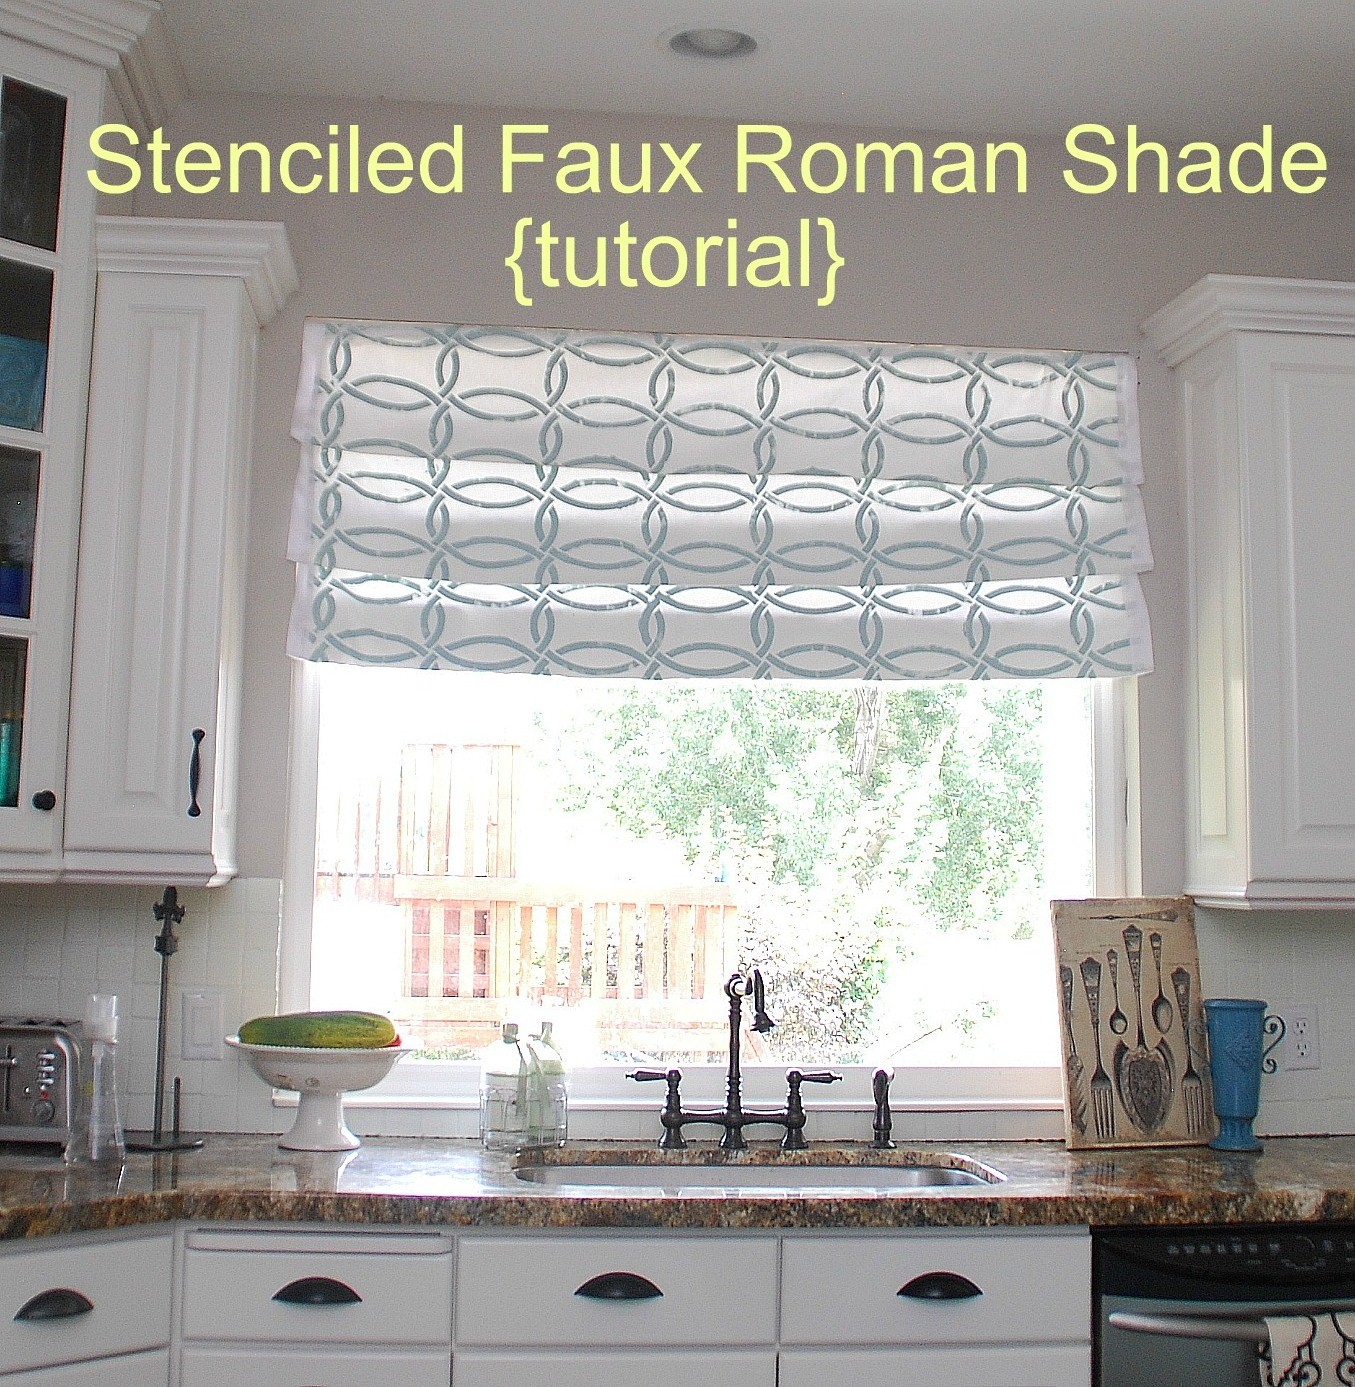 Iu0027m Still Working On My Kitchen Redo. I Decided I Wanted To Change Things  Up And Make A Roman Curtain For The Window Above My Kitchen Sink.